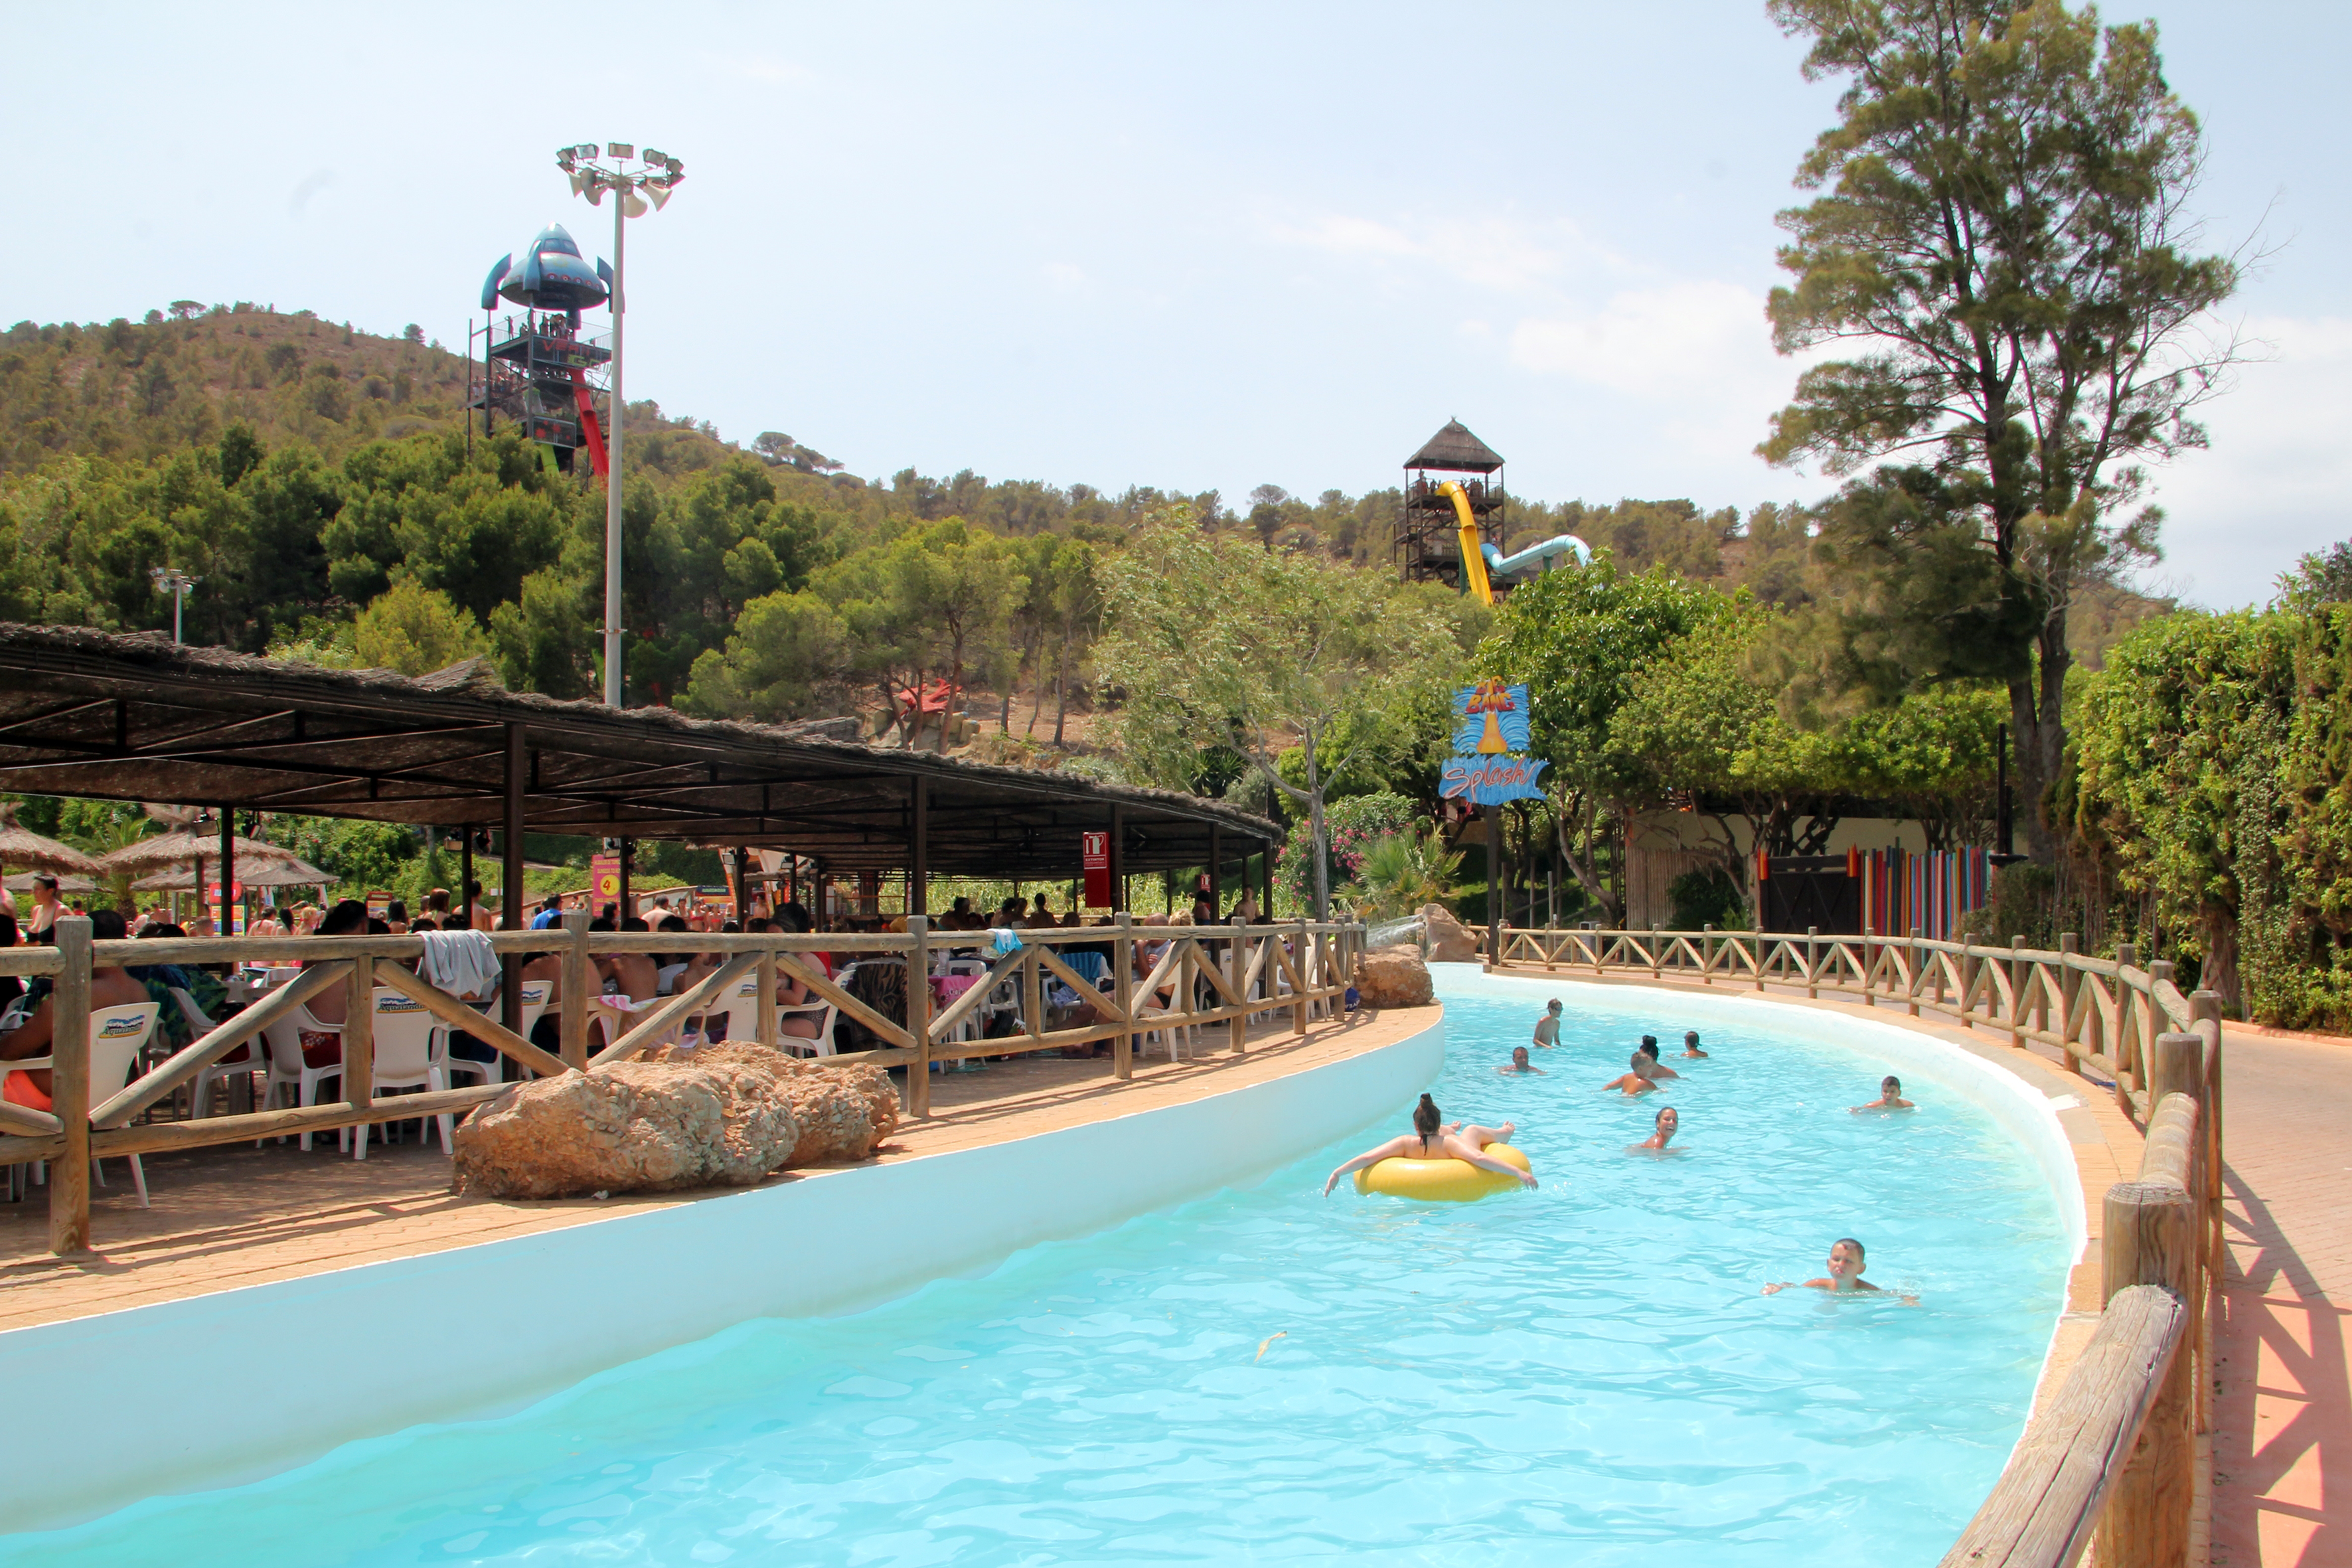 Aqualandia: A Paradise for the Little Ones